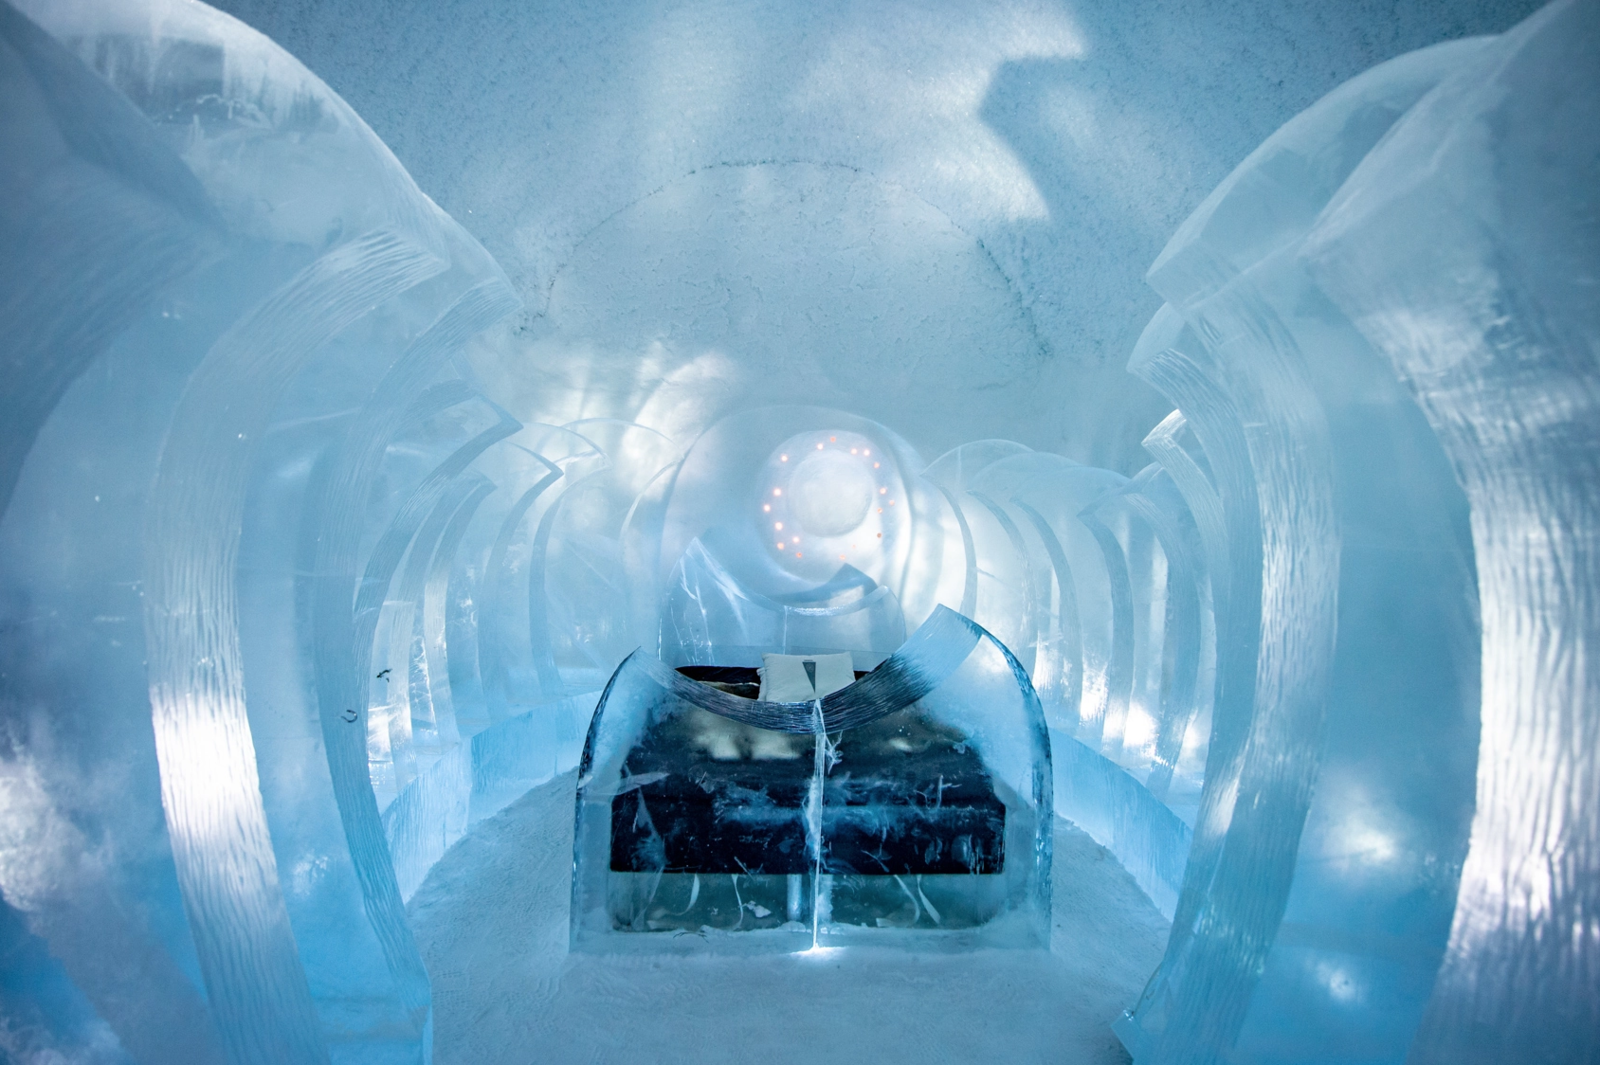 ❄️Check Out This Chilling Design at Sweden's Icehotel! icehotel ❄️Check Out This Chilling Design at Sweden's Icehotel! 7